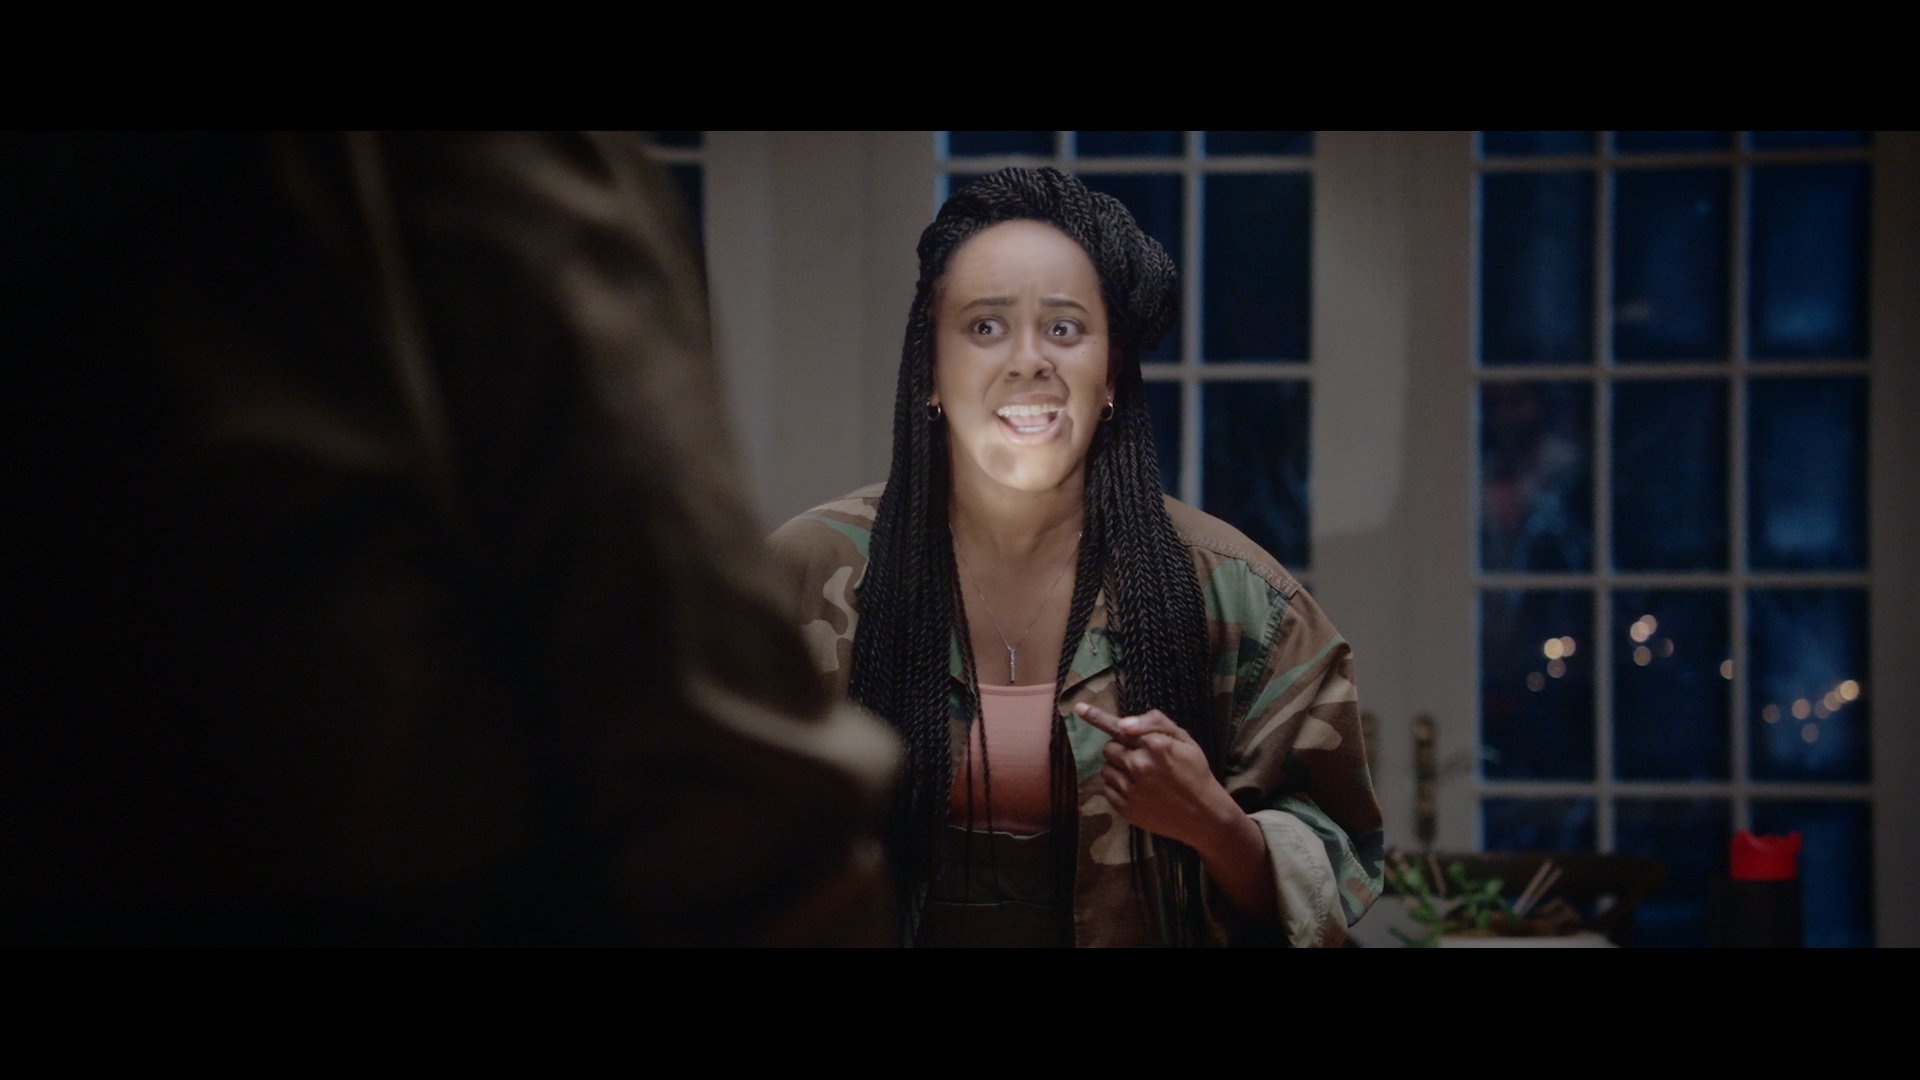 If more horror movies had all-black casts, they'd go a little differently. @3PeatComedy presents #TheBlackening. https://t.co/tnc8Pw8s2a